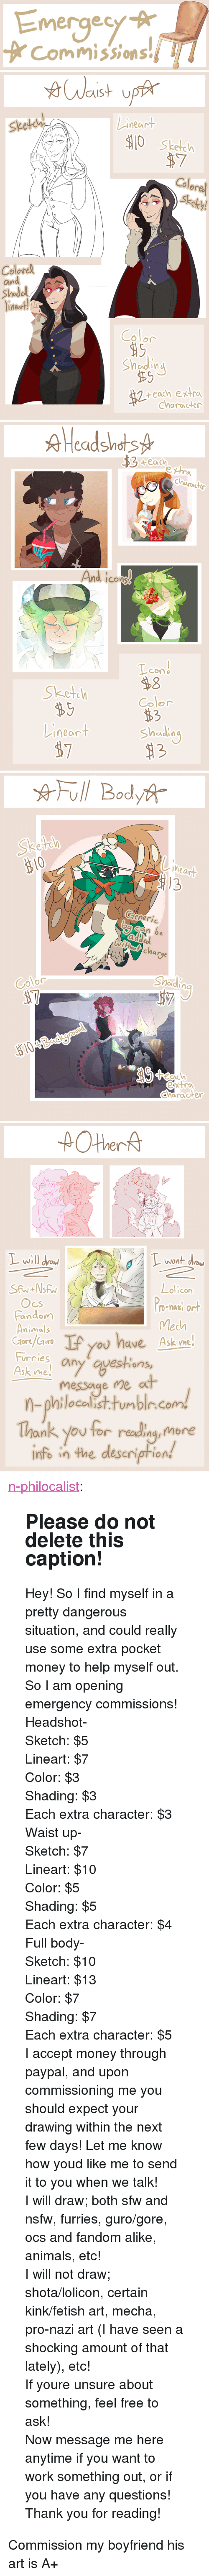 """Animals, Money, and Nsfw: Emergecy A  rCommissions   near  Sketth  Sketch  7  Colored  Skely!  Colorel  on  Shode  inee  เท  Colo  Shodin  9  each extra  character   2  $3 4eaci  etha  haracto  And icons  COW  Sketeh  $9  8  Color  63  Shadin  mear   ☆Full Body  Sk  13  2  chare  Shadin  Color  aS  character   )レ  wont  Ocs  Fandom  Animals  Lol'icon  o-Hat or  Mech  LF you ave Ask me  Fries ny oyestions  Ask me  at  messoge me  n-philocalist.tumbln.com  Thank you for rediny mone  info in the description  ank you for readingy more <p><a href=""""https://n-philocalist.tumblr.com/post/164840426390/please-do-not-delete-this-caption-hey-so-i-find"""" class=""""tumblr_blog"""">n-philocalist</a>:</p><blockquote> <h2><b>Please do not delete this caption!</b></h2> <p>Hey! So I find myself in a pretty dangerous situation, and could really use some extra pocket money to help myself out. So I am opening emergency commissions!</p> <p>Headshot-<br/>Sketch: $5<br/>Lineart: $7<br/>Color: $3<br/>Shading: $3<br/>Each extra character: $3</p> <p>Waist up-<br/>Sketch: $7<br/>Lineart: $10<br/>Color: $5<br/>Shading: $5<br/>Each extra character: $4</p> <p>Full body-<br/>Sketch: $10<br/>Lineart: $13<br/>Color: $7<br/>Shading: $7<br/>Each extra character: $5</p> <p>I accept money through paypal, and upon commissioning me you should expect your drawing within the next few days! Let me know how youd like me to send it to you when we talk!</p> <p>I will draw; both sfw and nsfw, furries, guro/gore, ocs and fandom alike, animals, etc!<br/>I will not draw; shota/lolicon, certain kink/fetish art, mecha, pro-nazi art (I have seen a shocking amount of that lately), etc!<br/>If youre unsure about something, feel free to ask!</p> <p>Now message me here anytime if you want to work something out, or if you have any questions! Thank you for reading!</p> </blockquote> <p>Commission my boyfriend his art is A+</p>"""